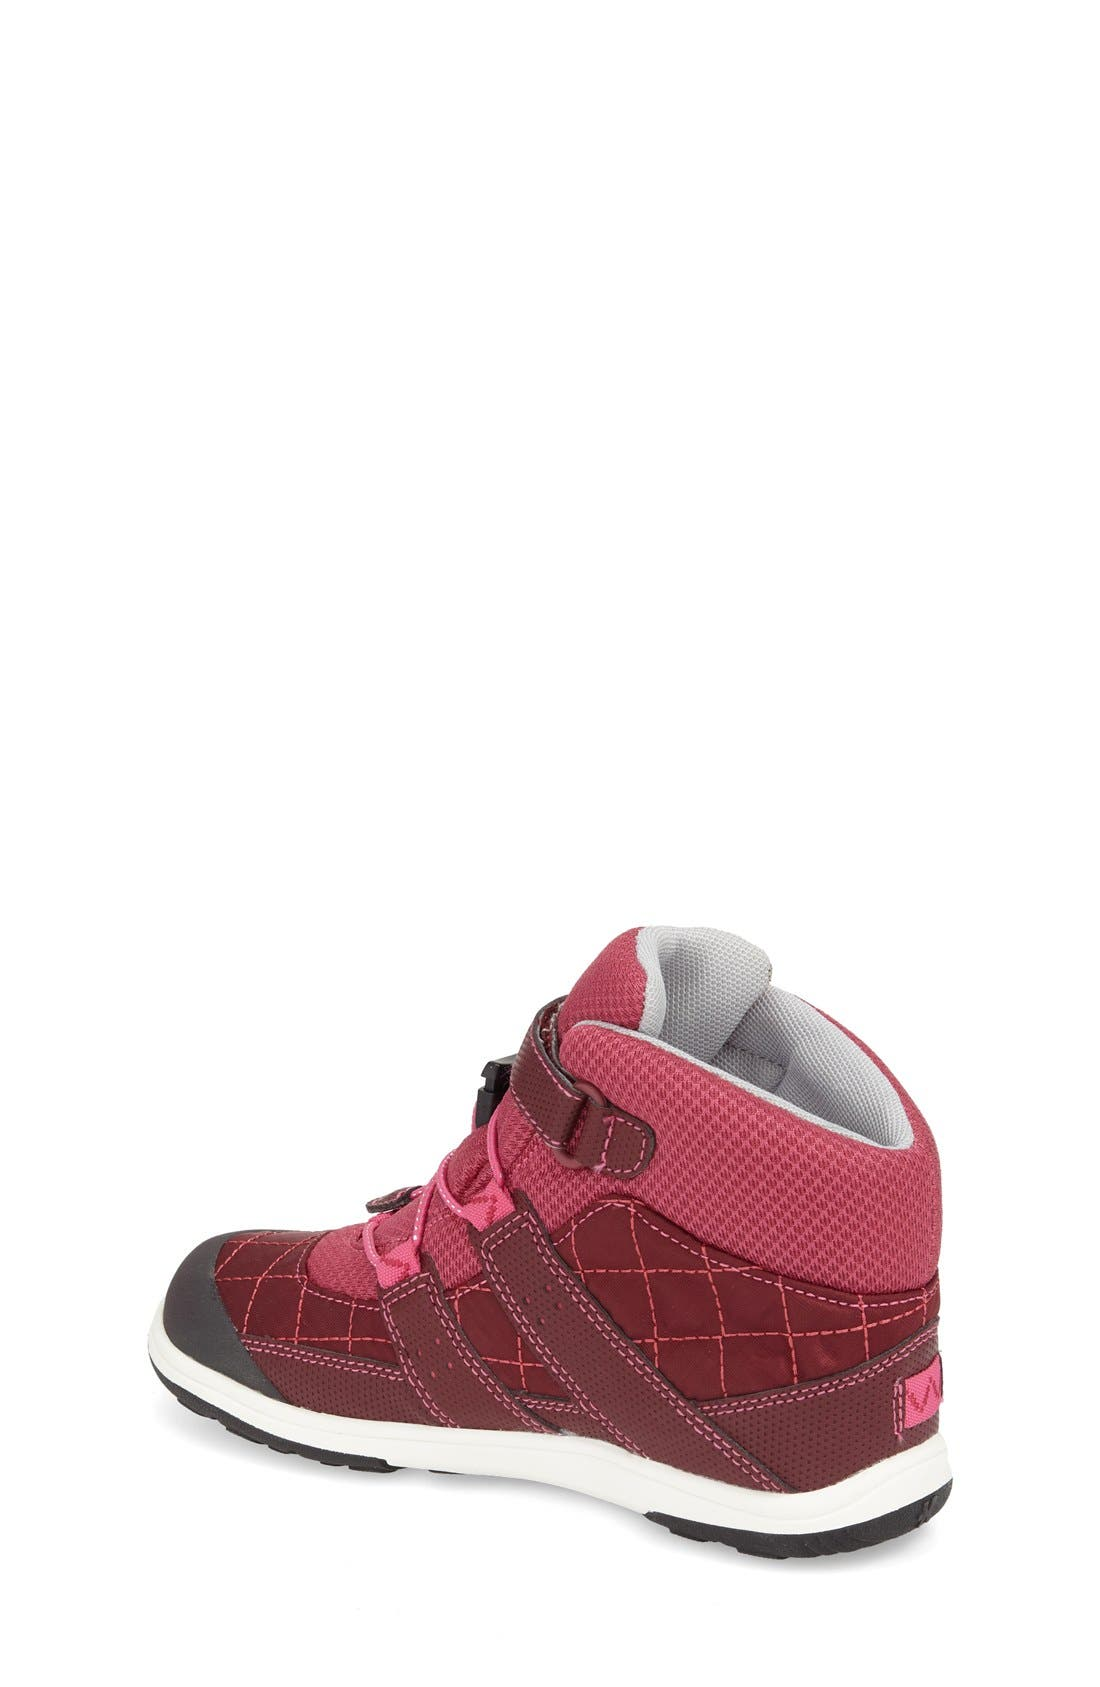 'Atlas' Waterproof Boot,                             Alternate thumbnail 6, color,